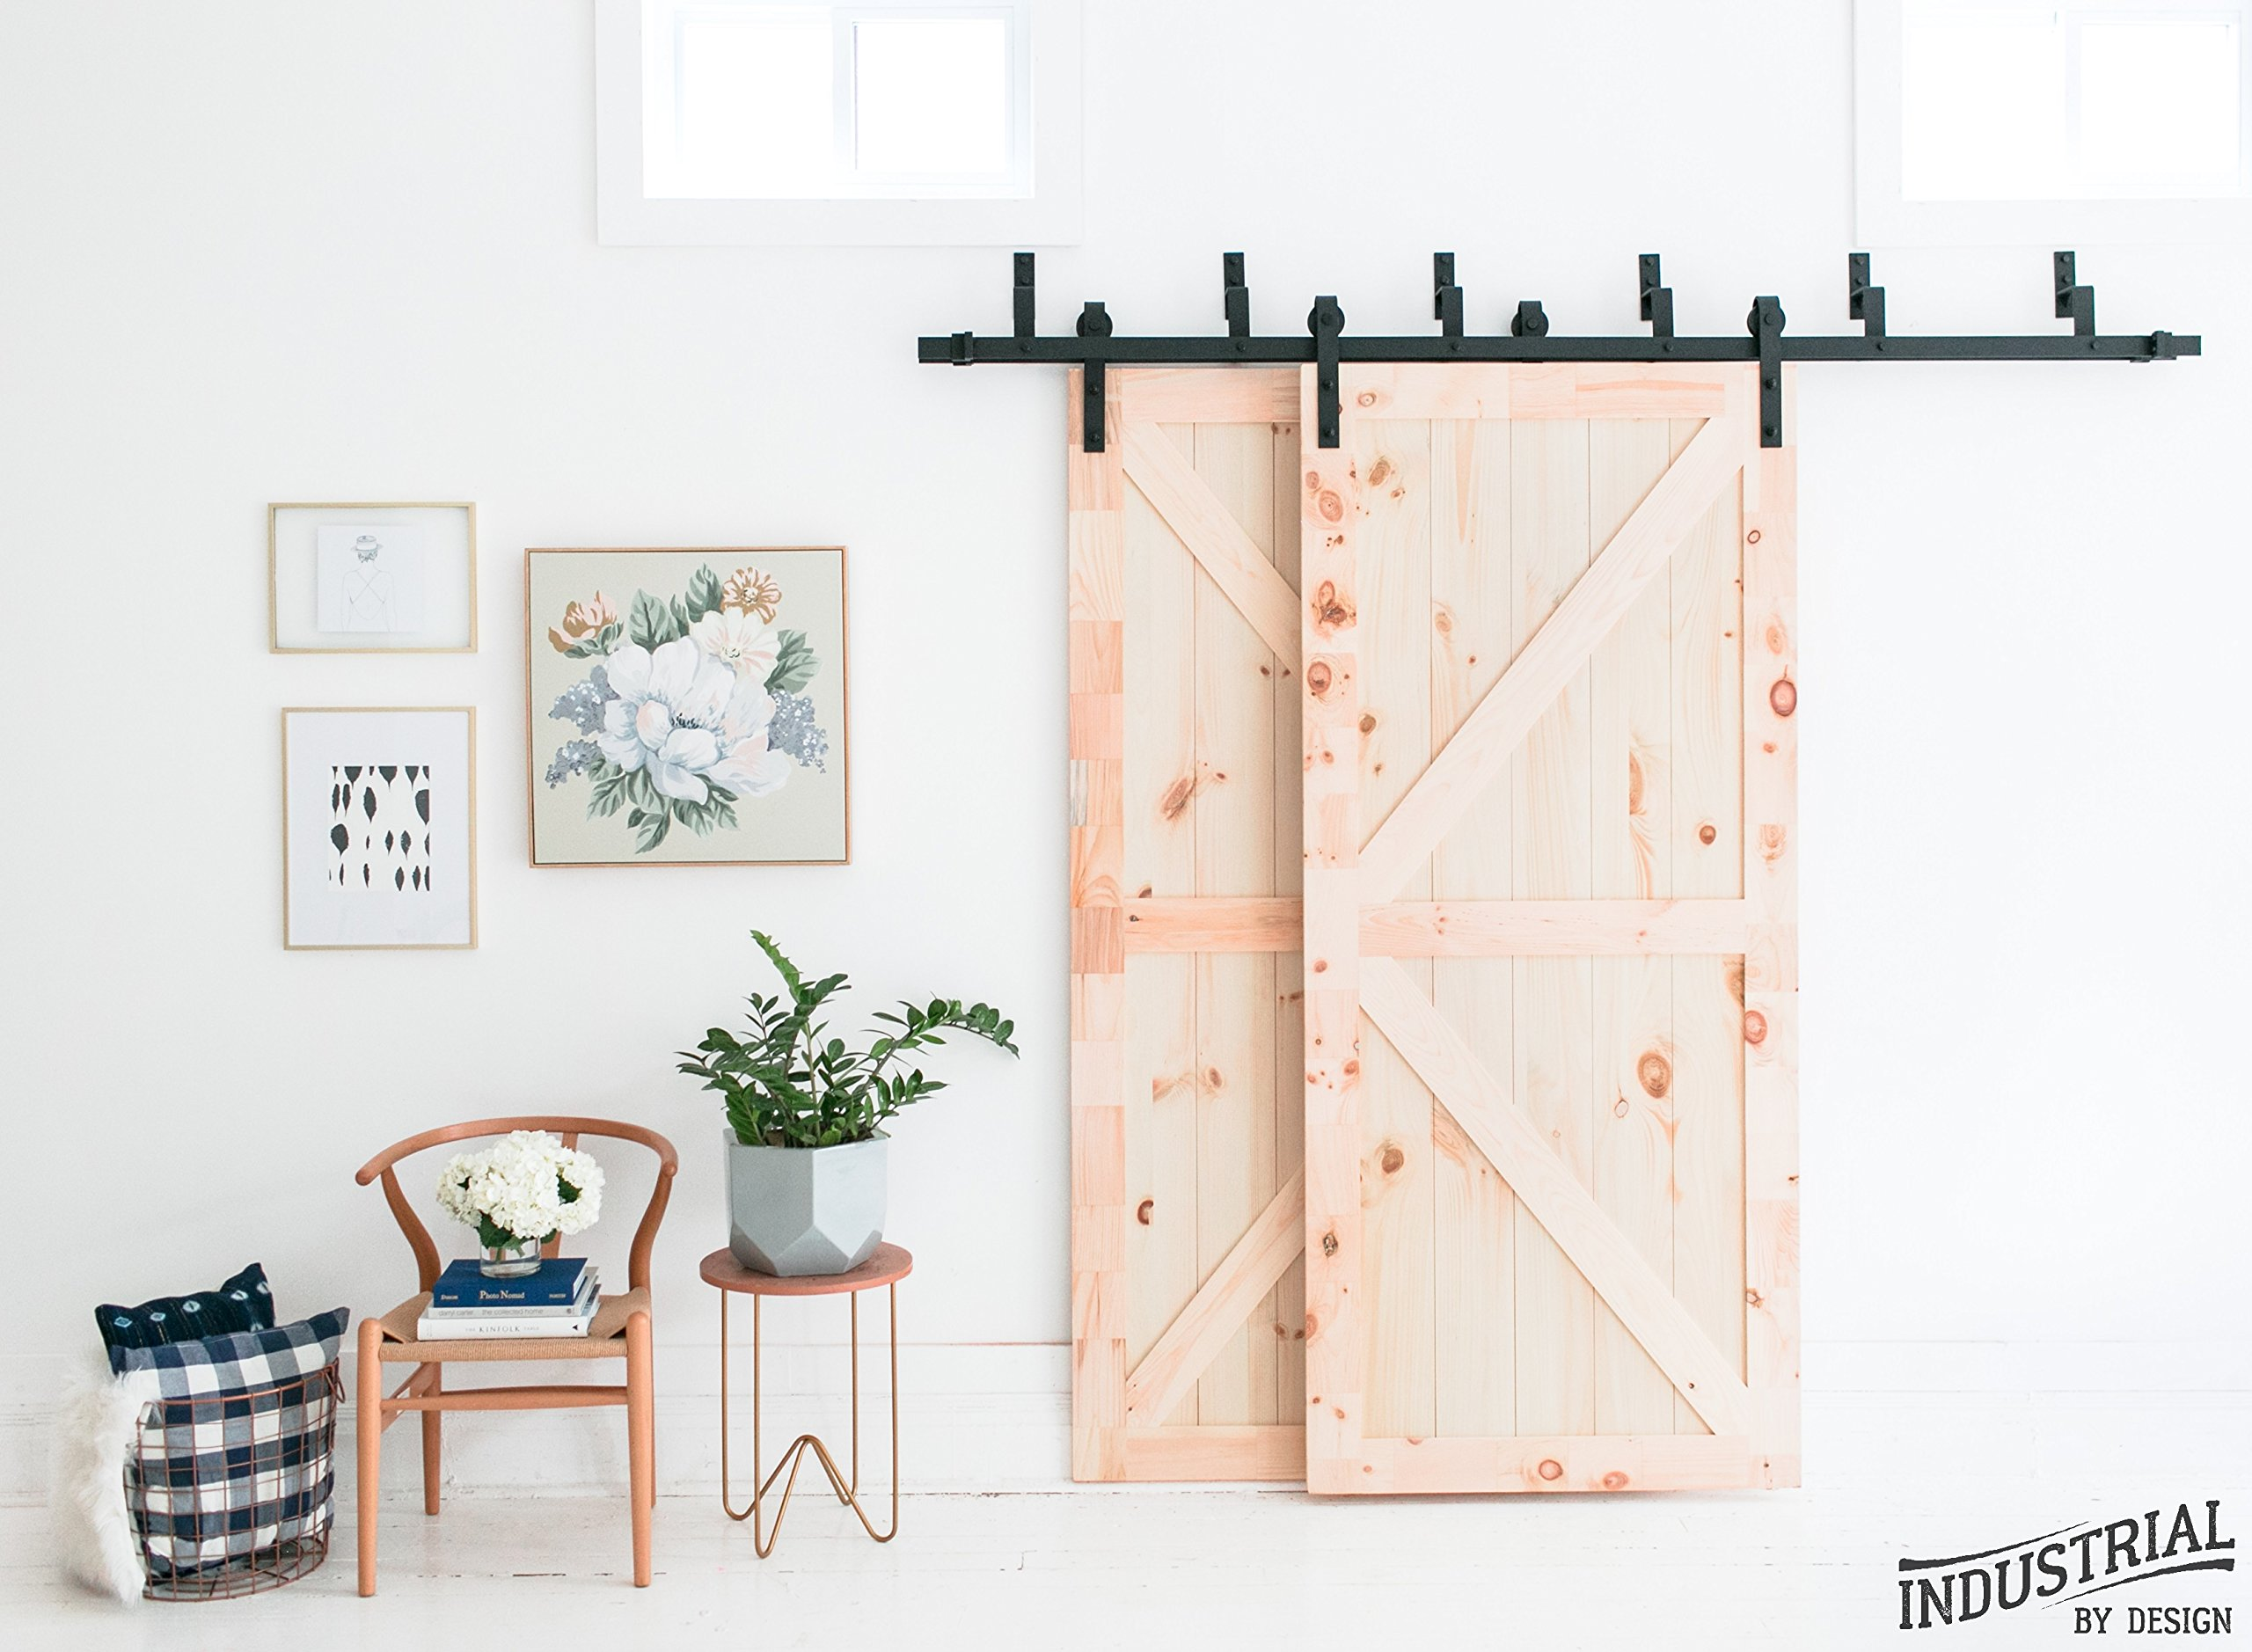 8-Foot Heavy Duty Bypass Sliding Barn Door Hardware Kit (Black) ▫ Includes Easy Step-By-Step Installation Video ▫ Ultra Quiet, Tested Beyond 100,000 Rolls ▫ Superior Quality